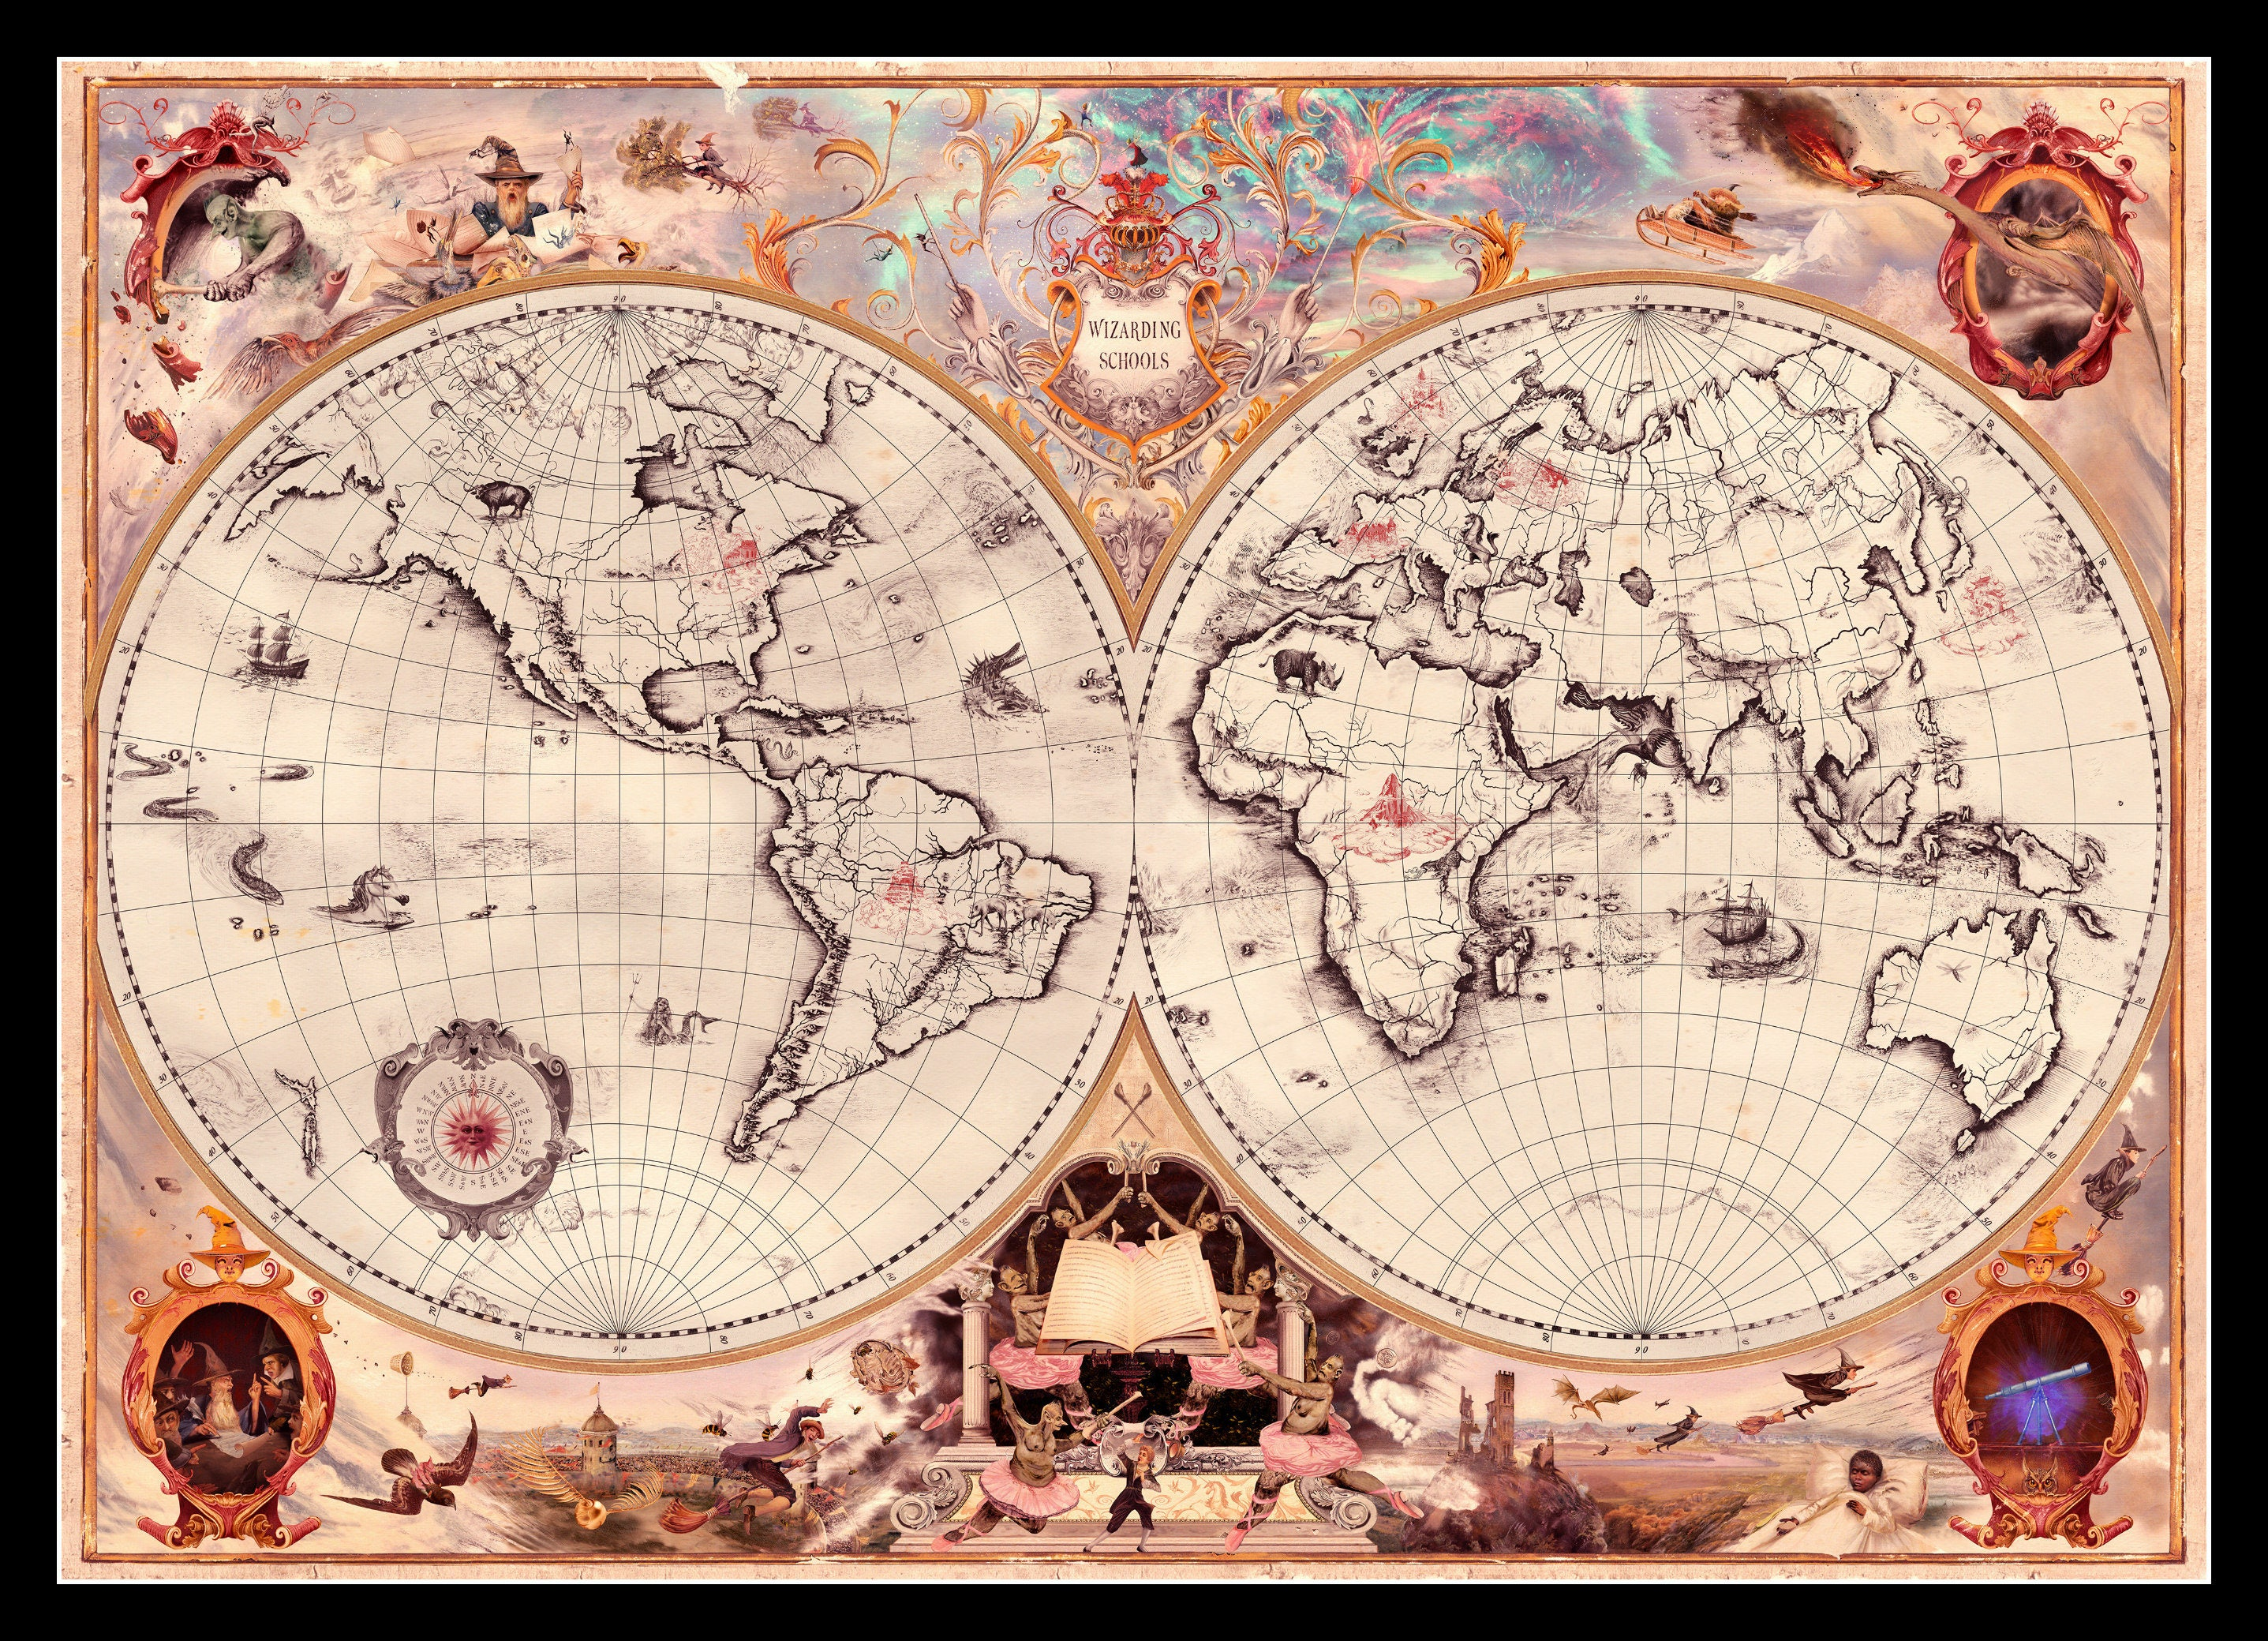 Paper World Map Sse.Harry Potter Wizarding Schools Map Of The World Art Poster Etsy